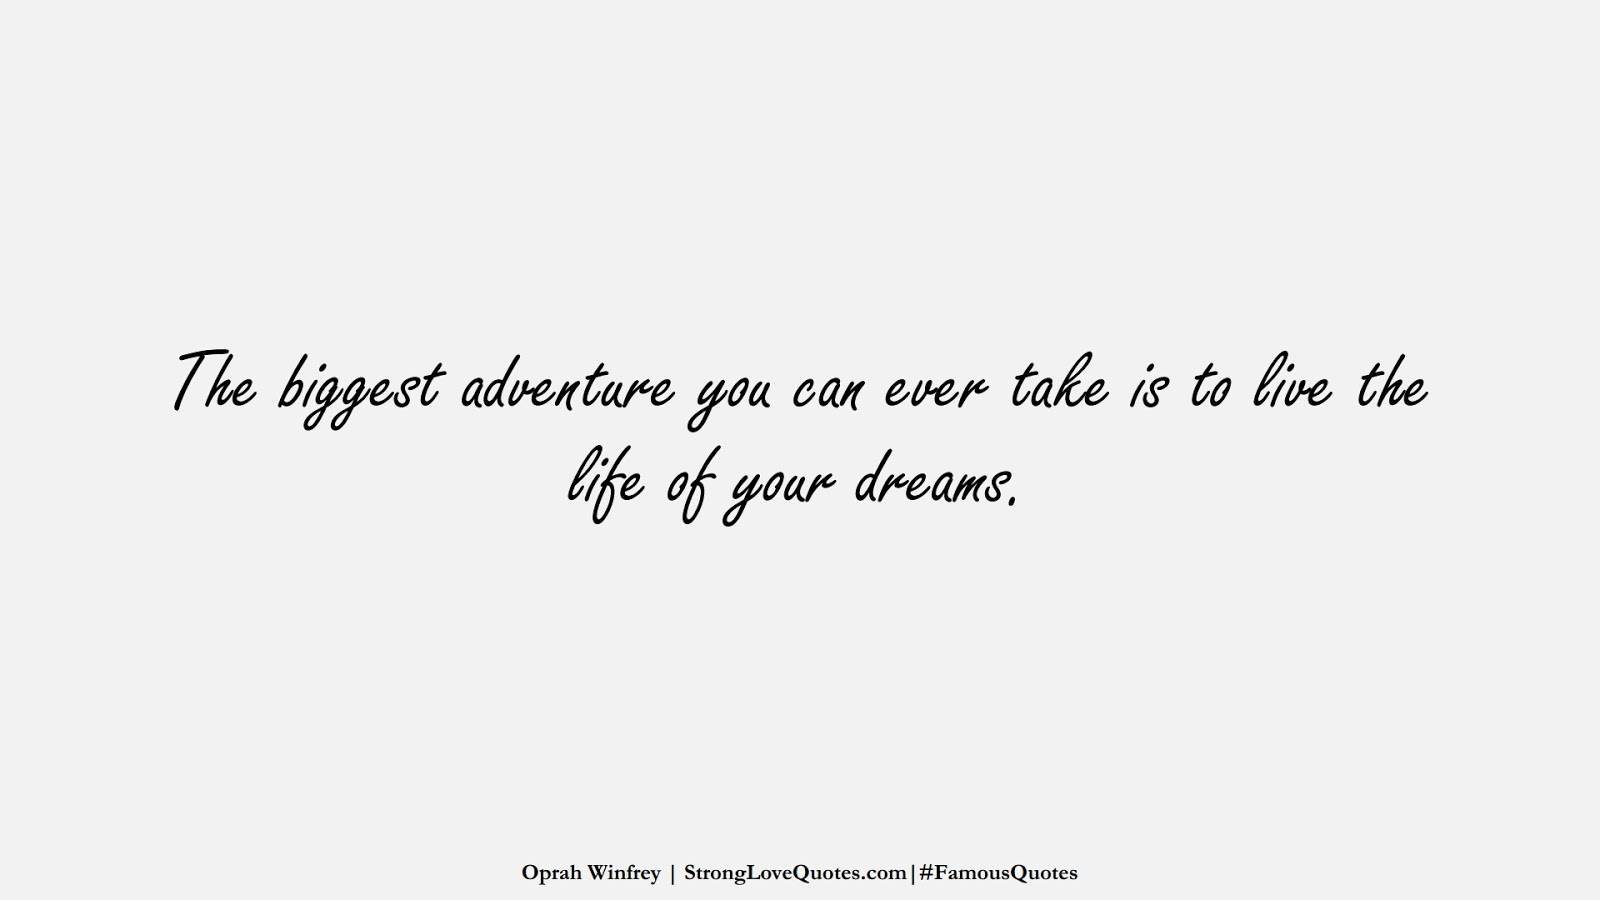 The biggest adventure you can ever take is to live the life of your dreams. (Oprah Winfrey);  #FamousQuotes